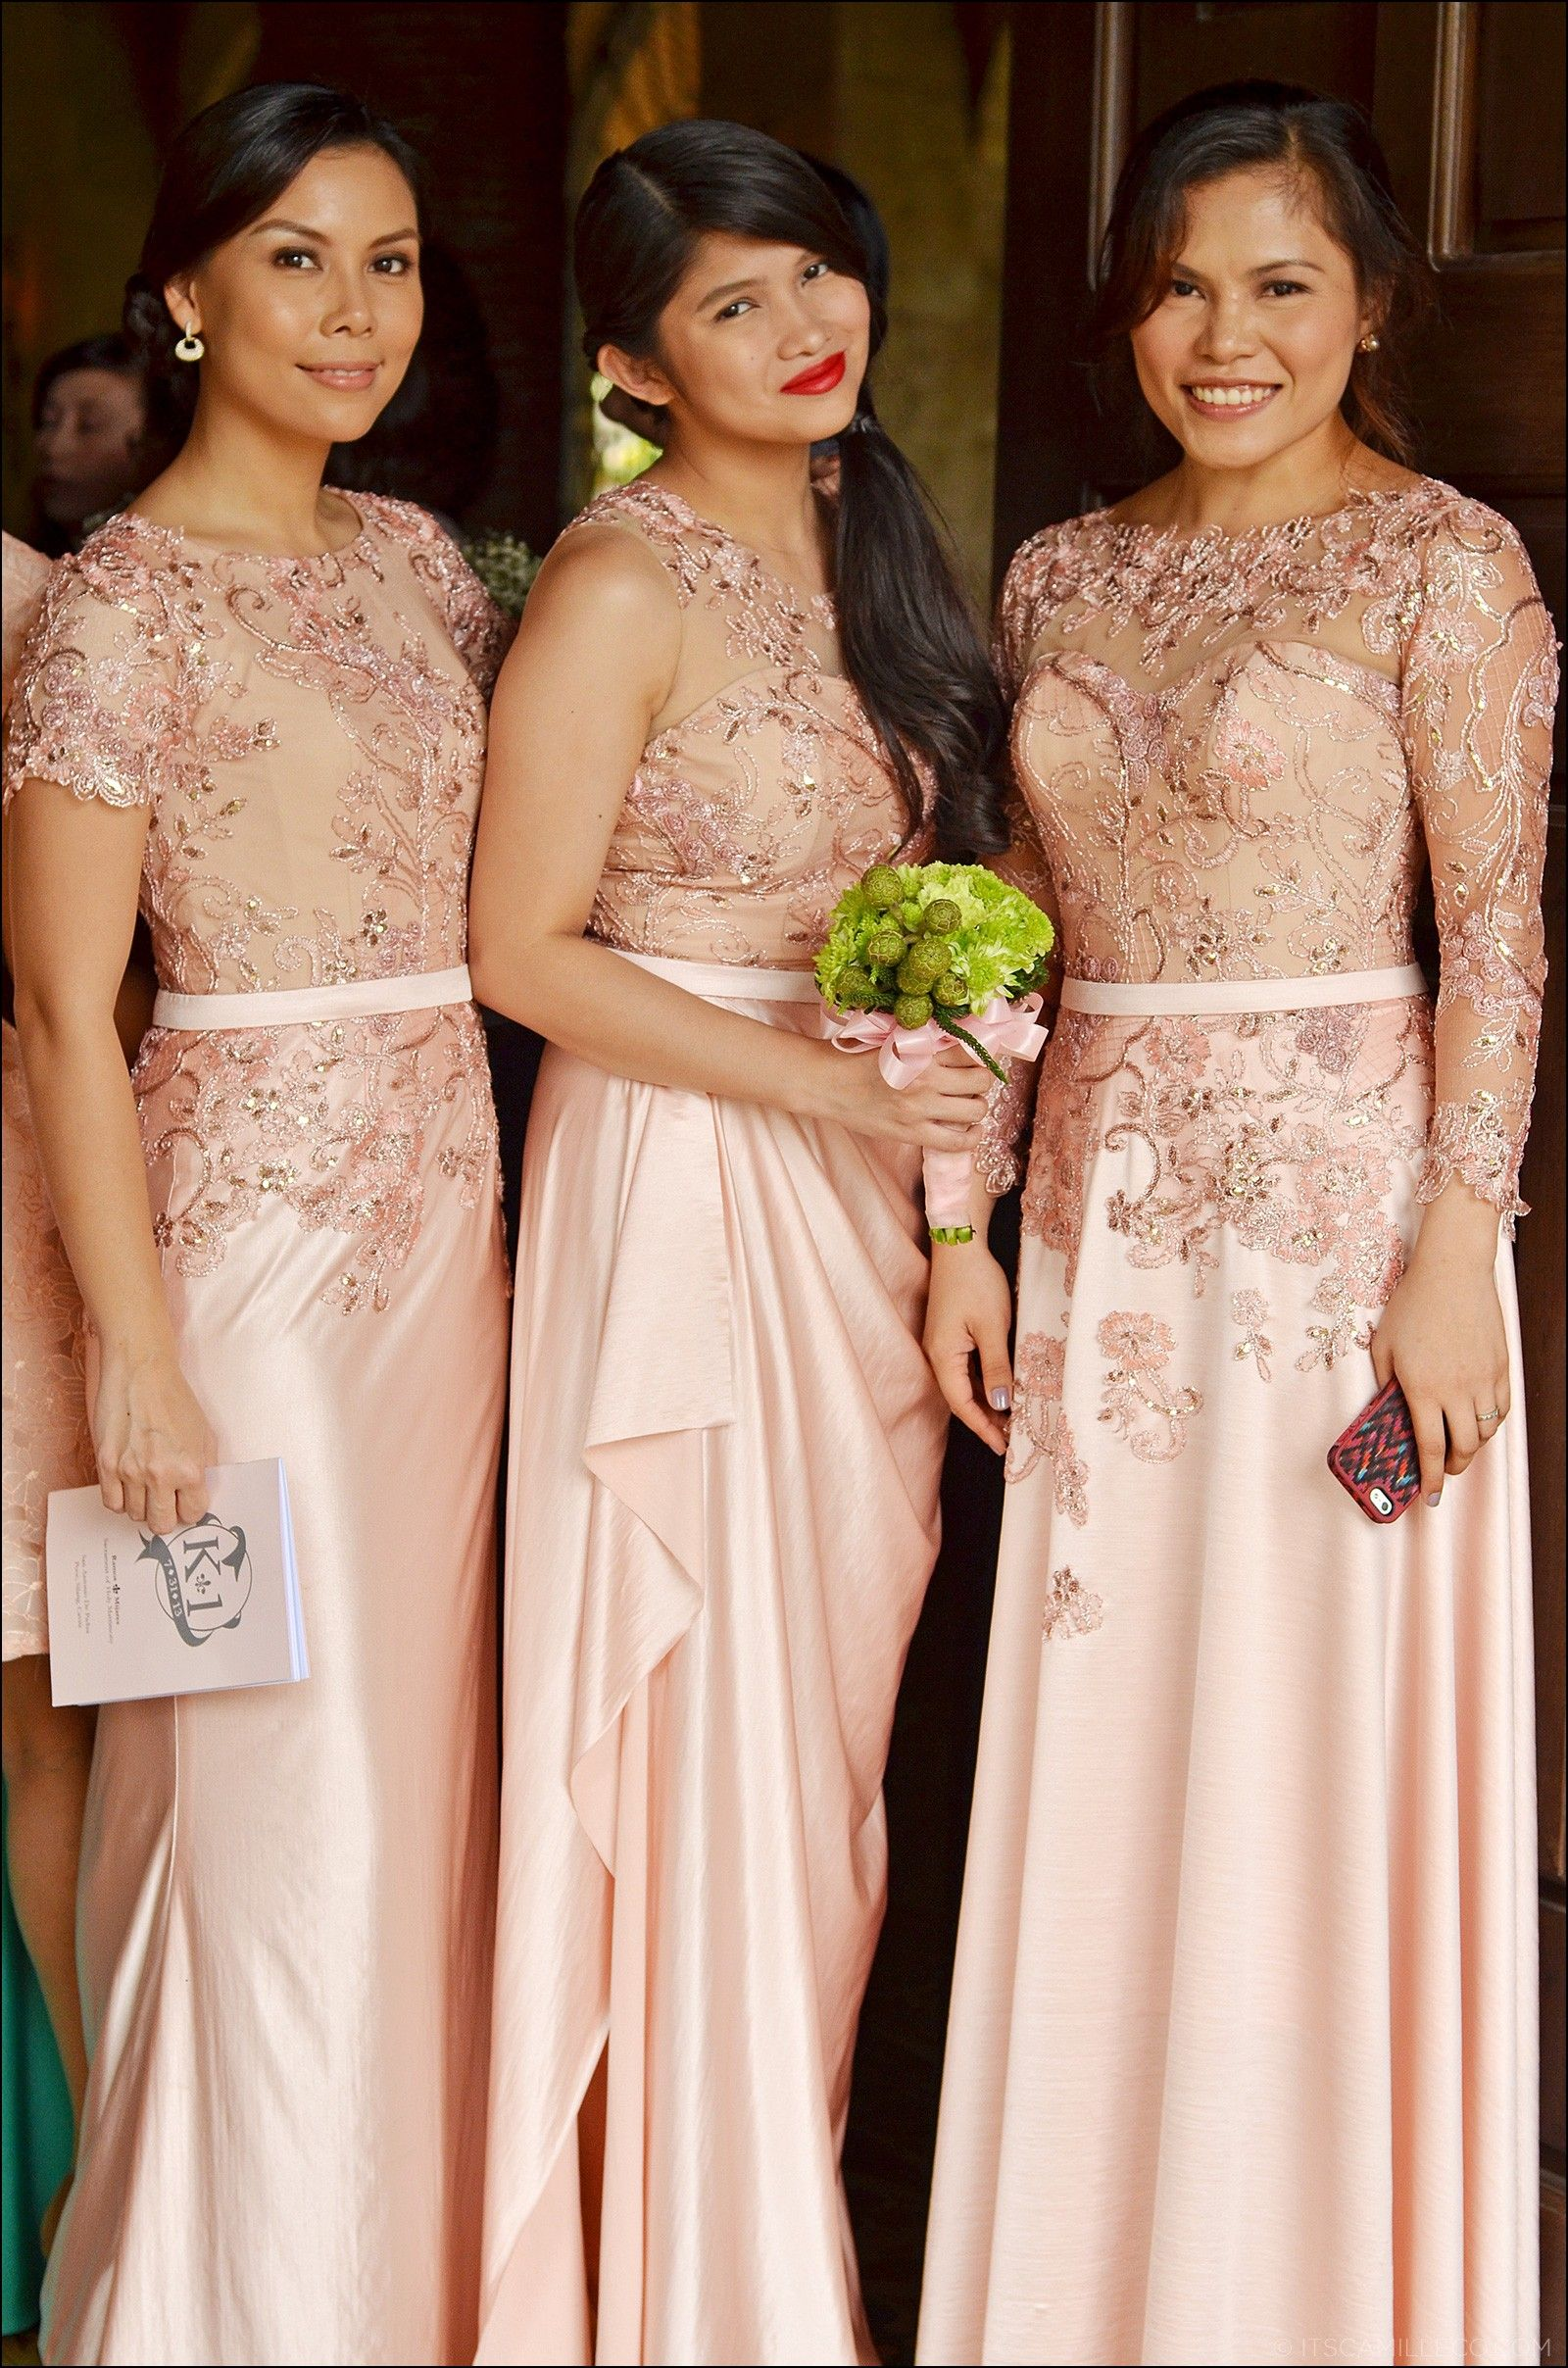 Wedding Entourage Gowns | Dresses and Gowns Ideas | Pinterest ...